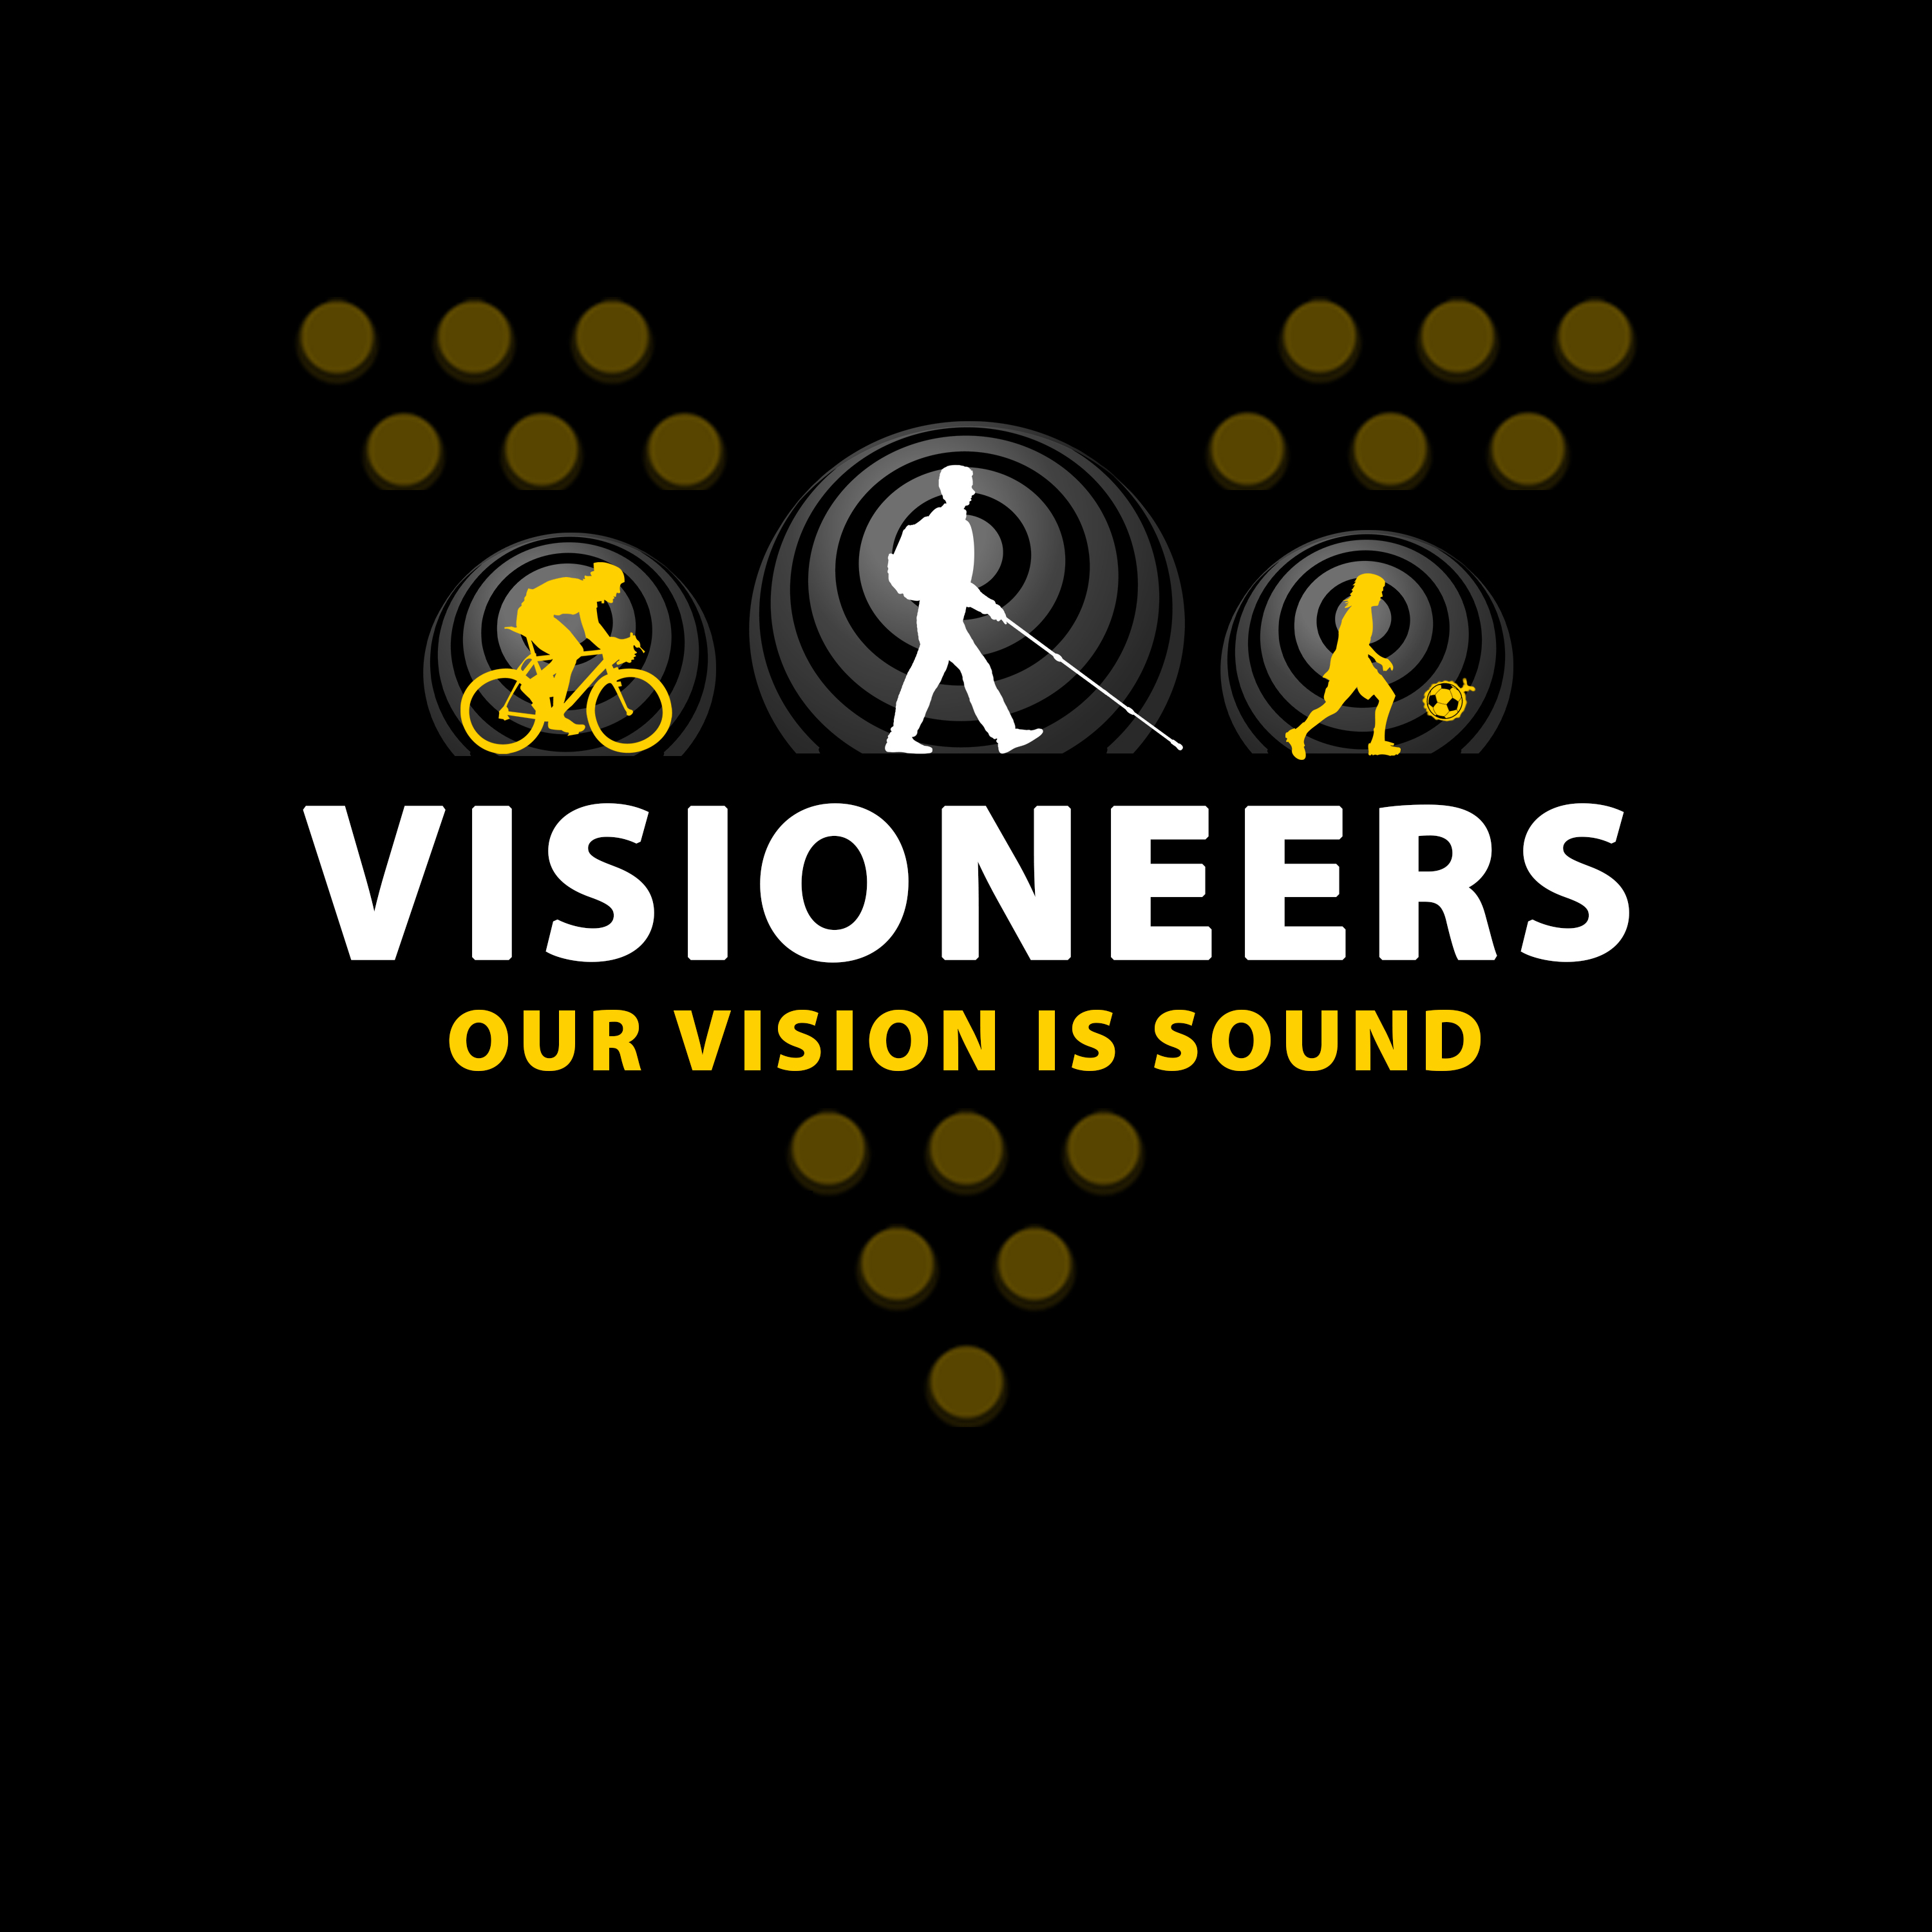 Visioneers 2. Same as previous panel but with white Daniel silhouette.